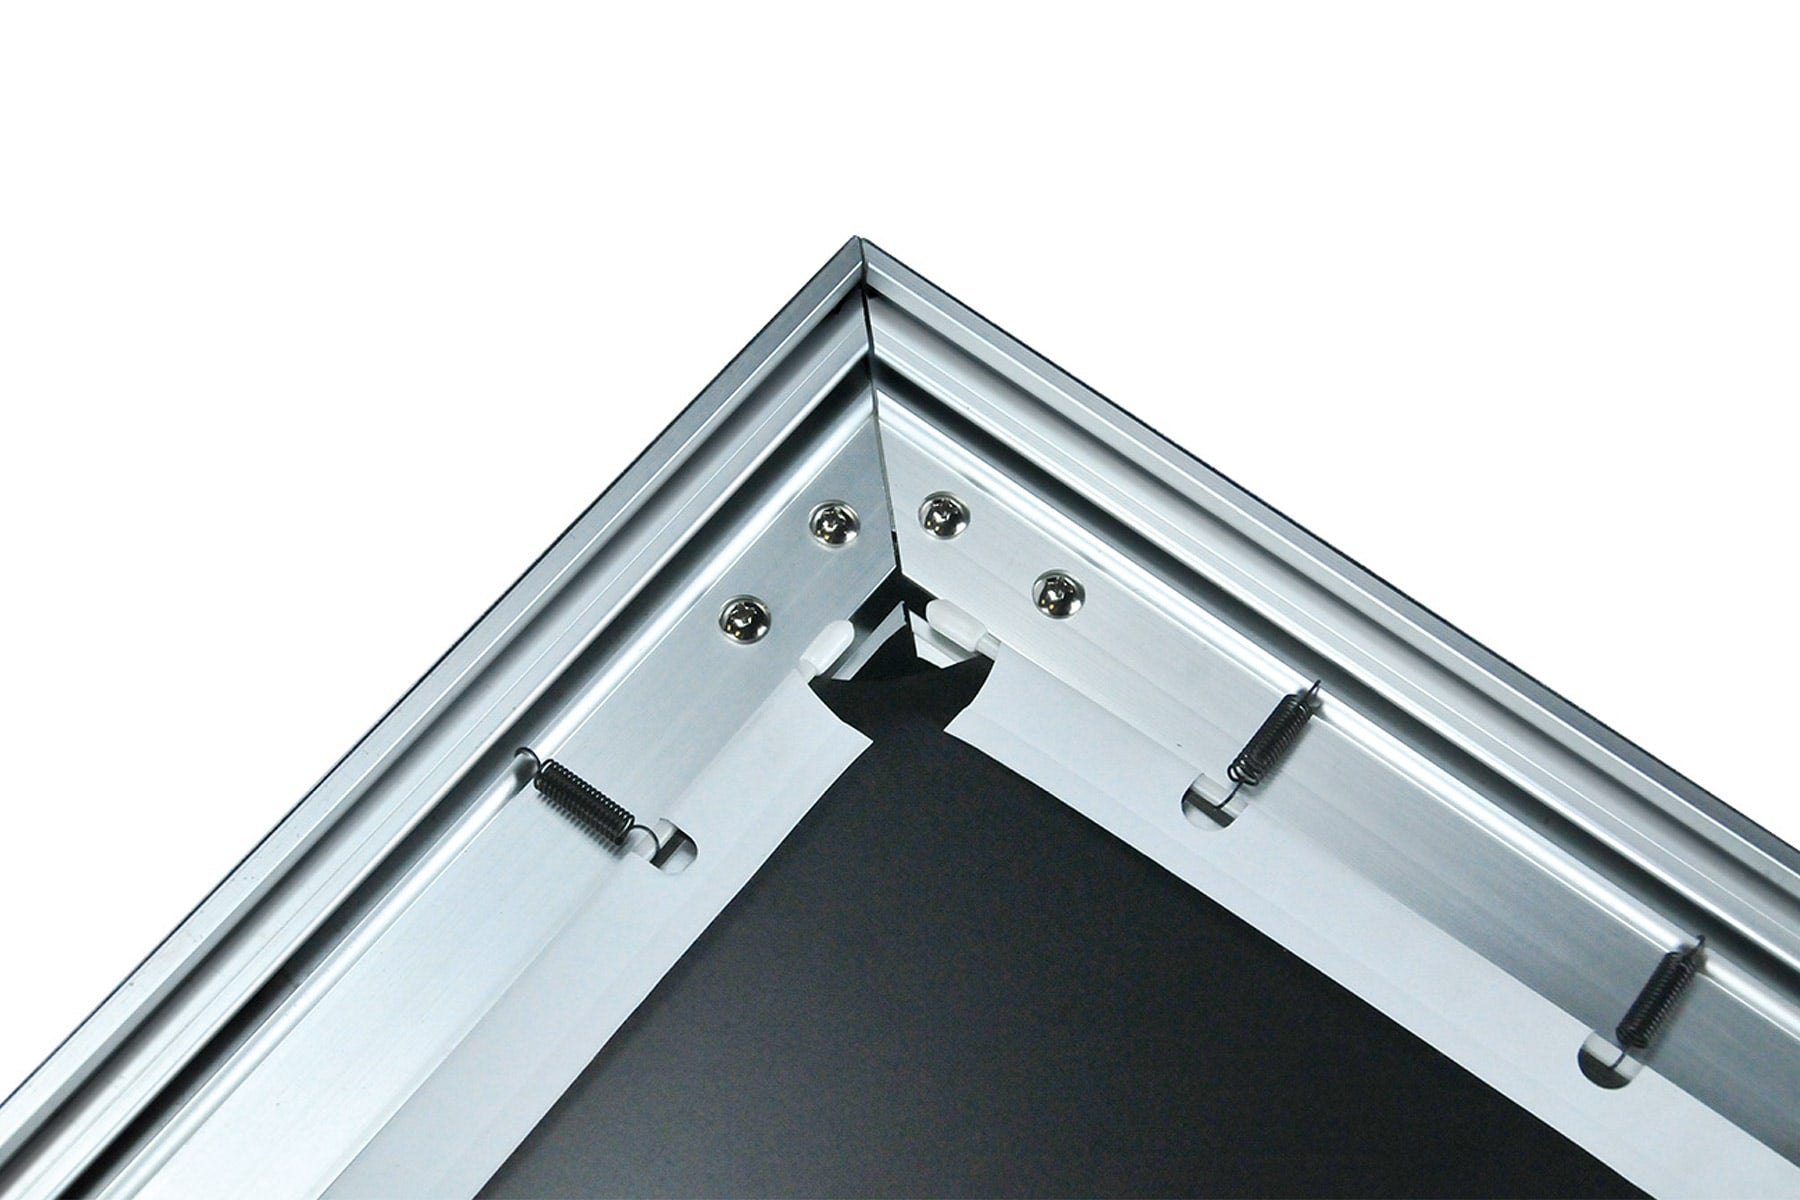 Detail showing tension springs of Stratus accoustically transparent fixed frame projector screen